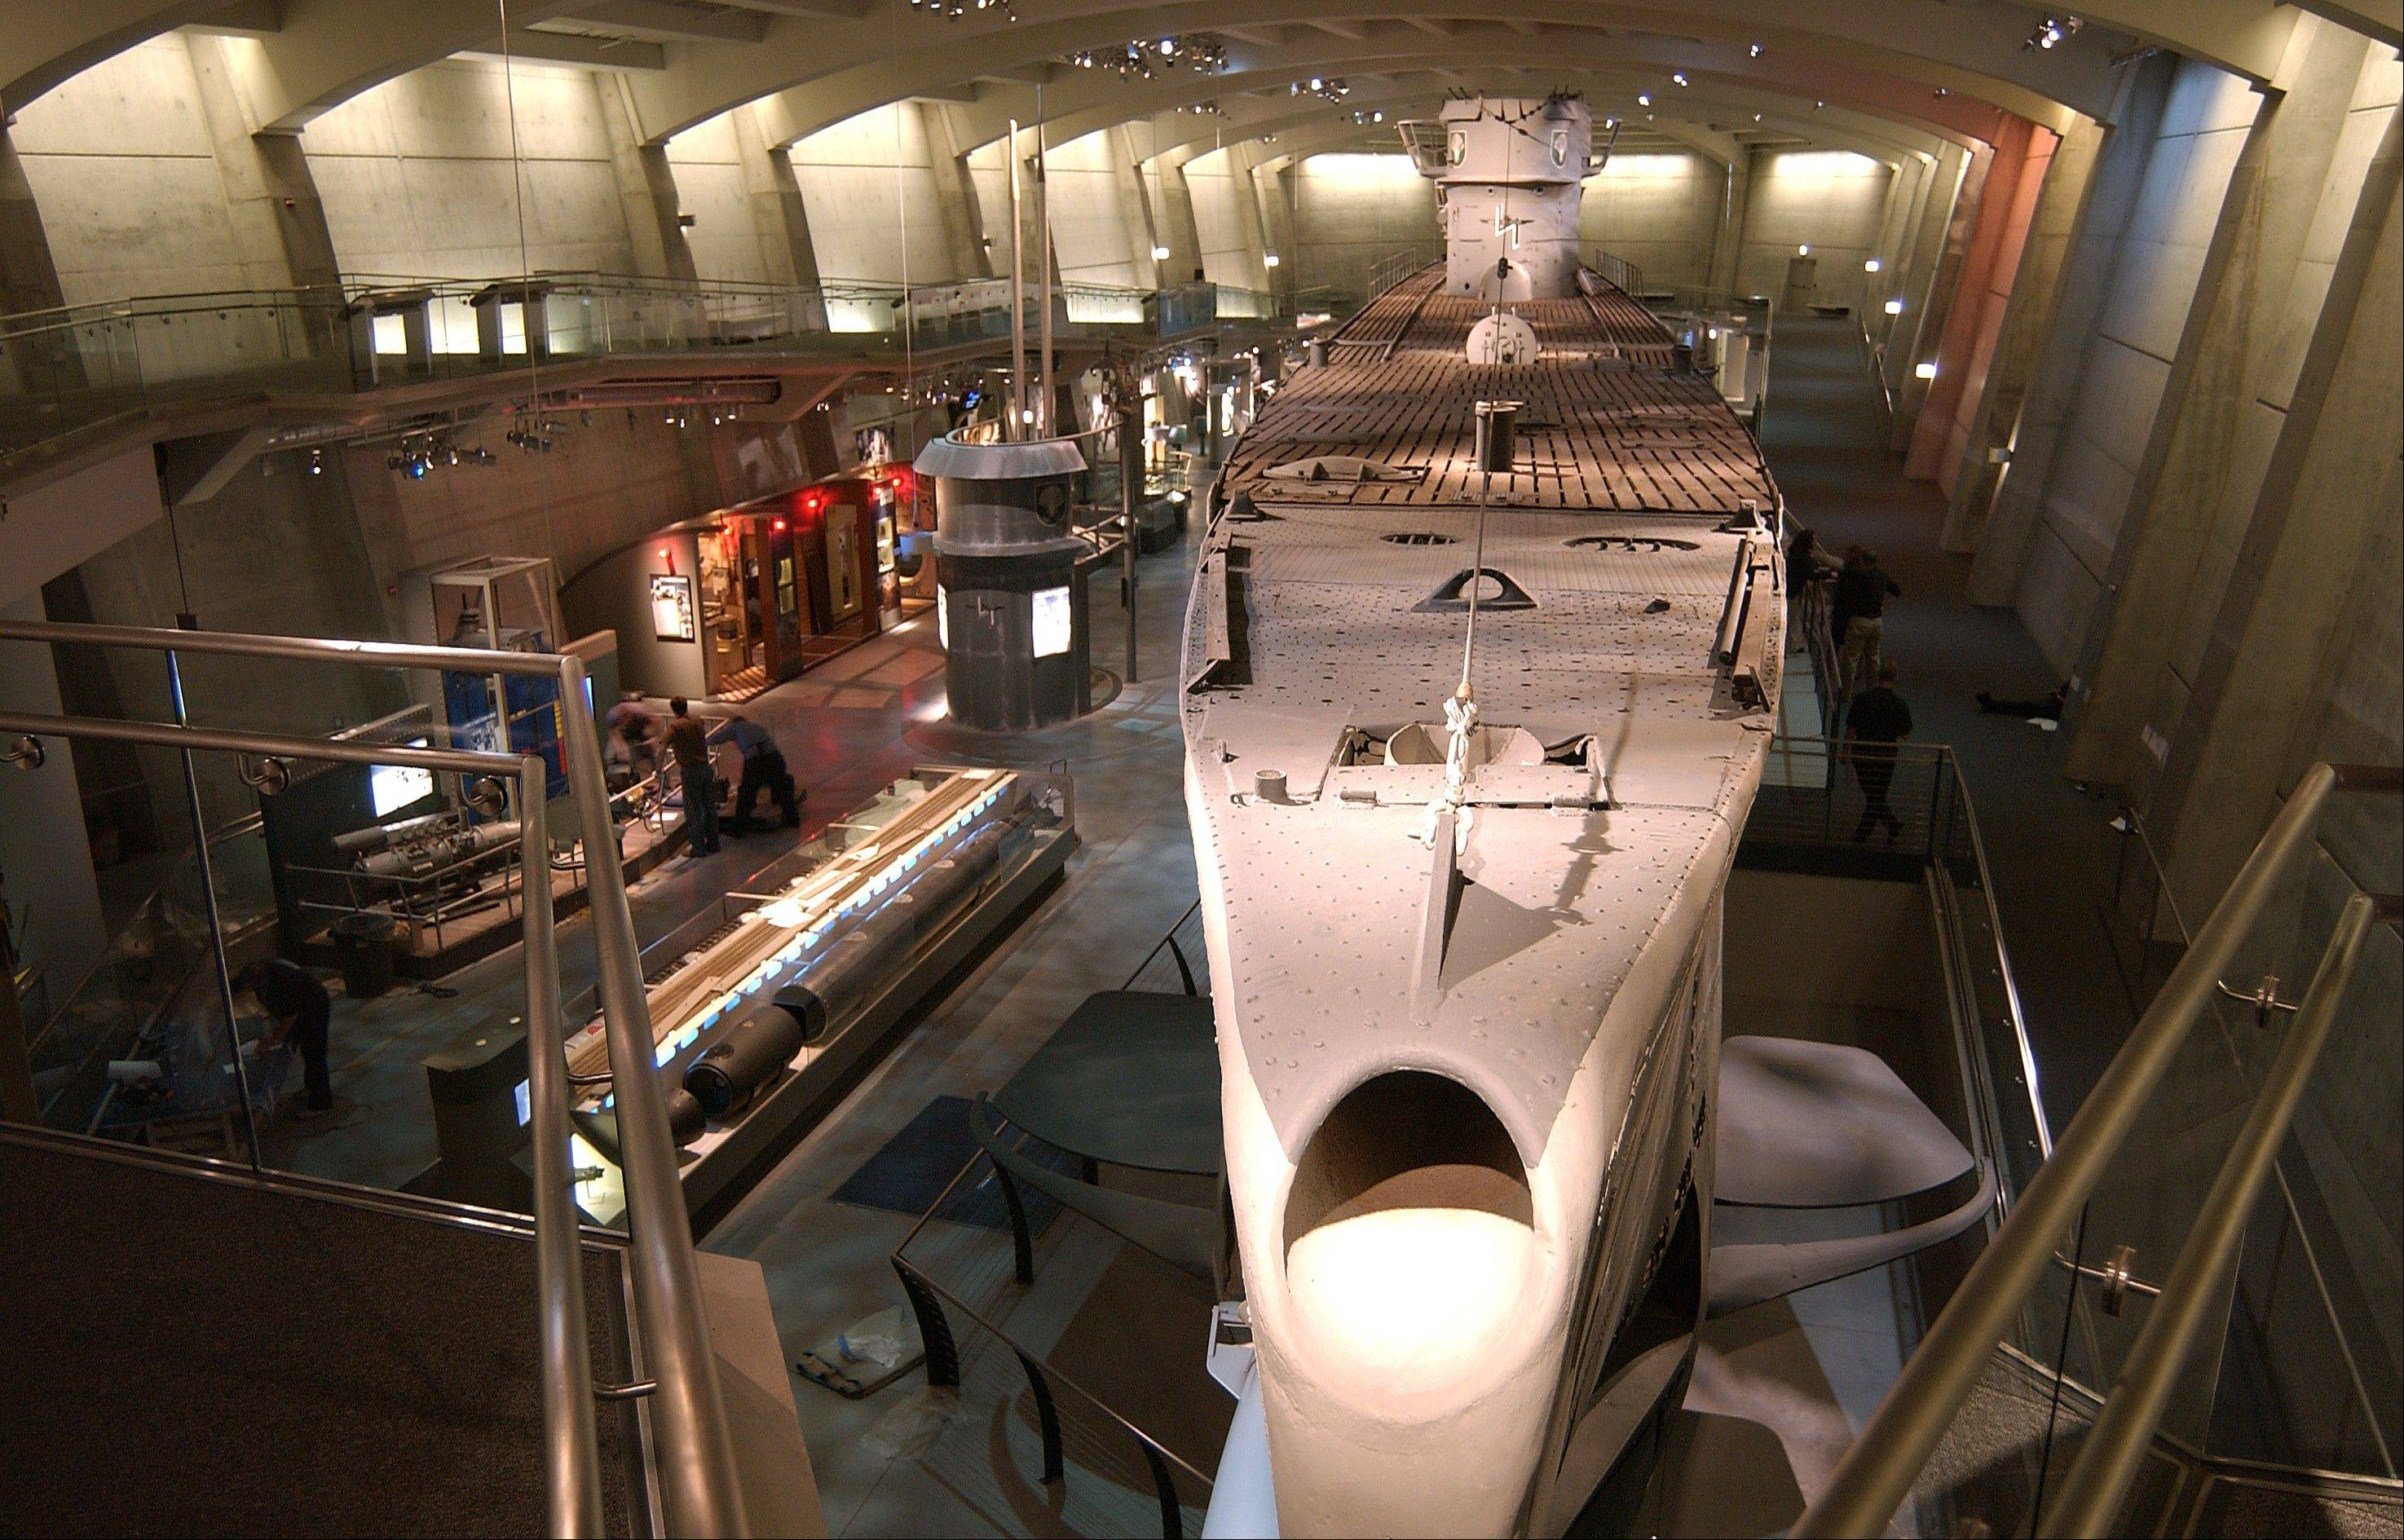 Guests can view the 35,000-square-foot U-505 submarine exhibit at the Museum of Science and Industry in Chicago.